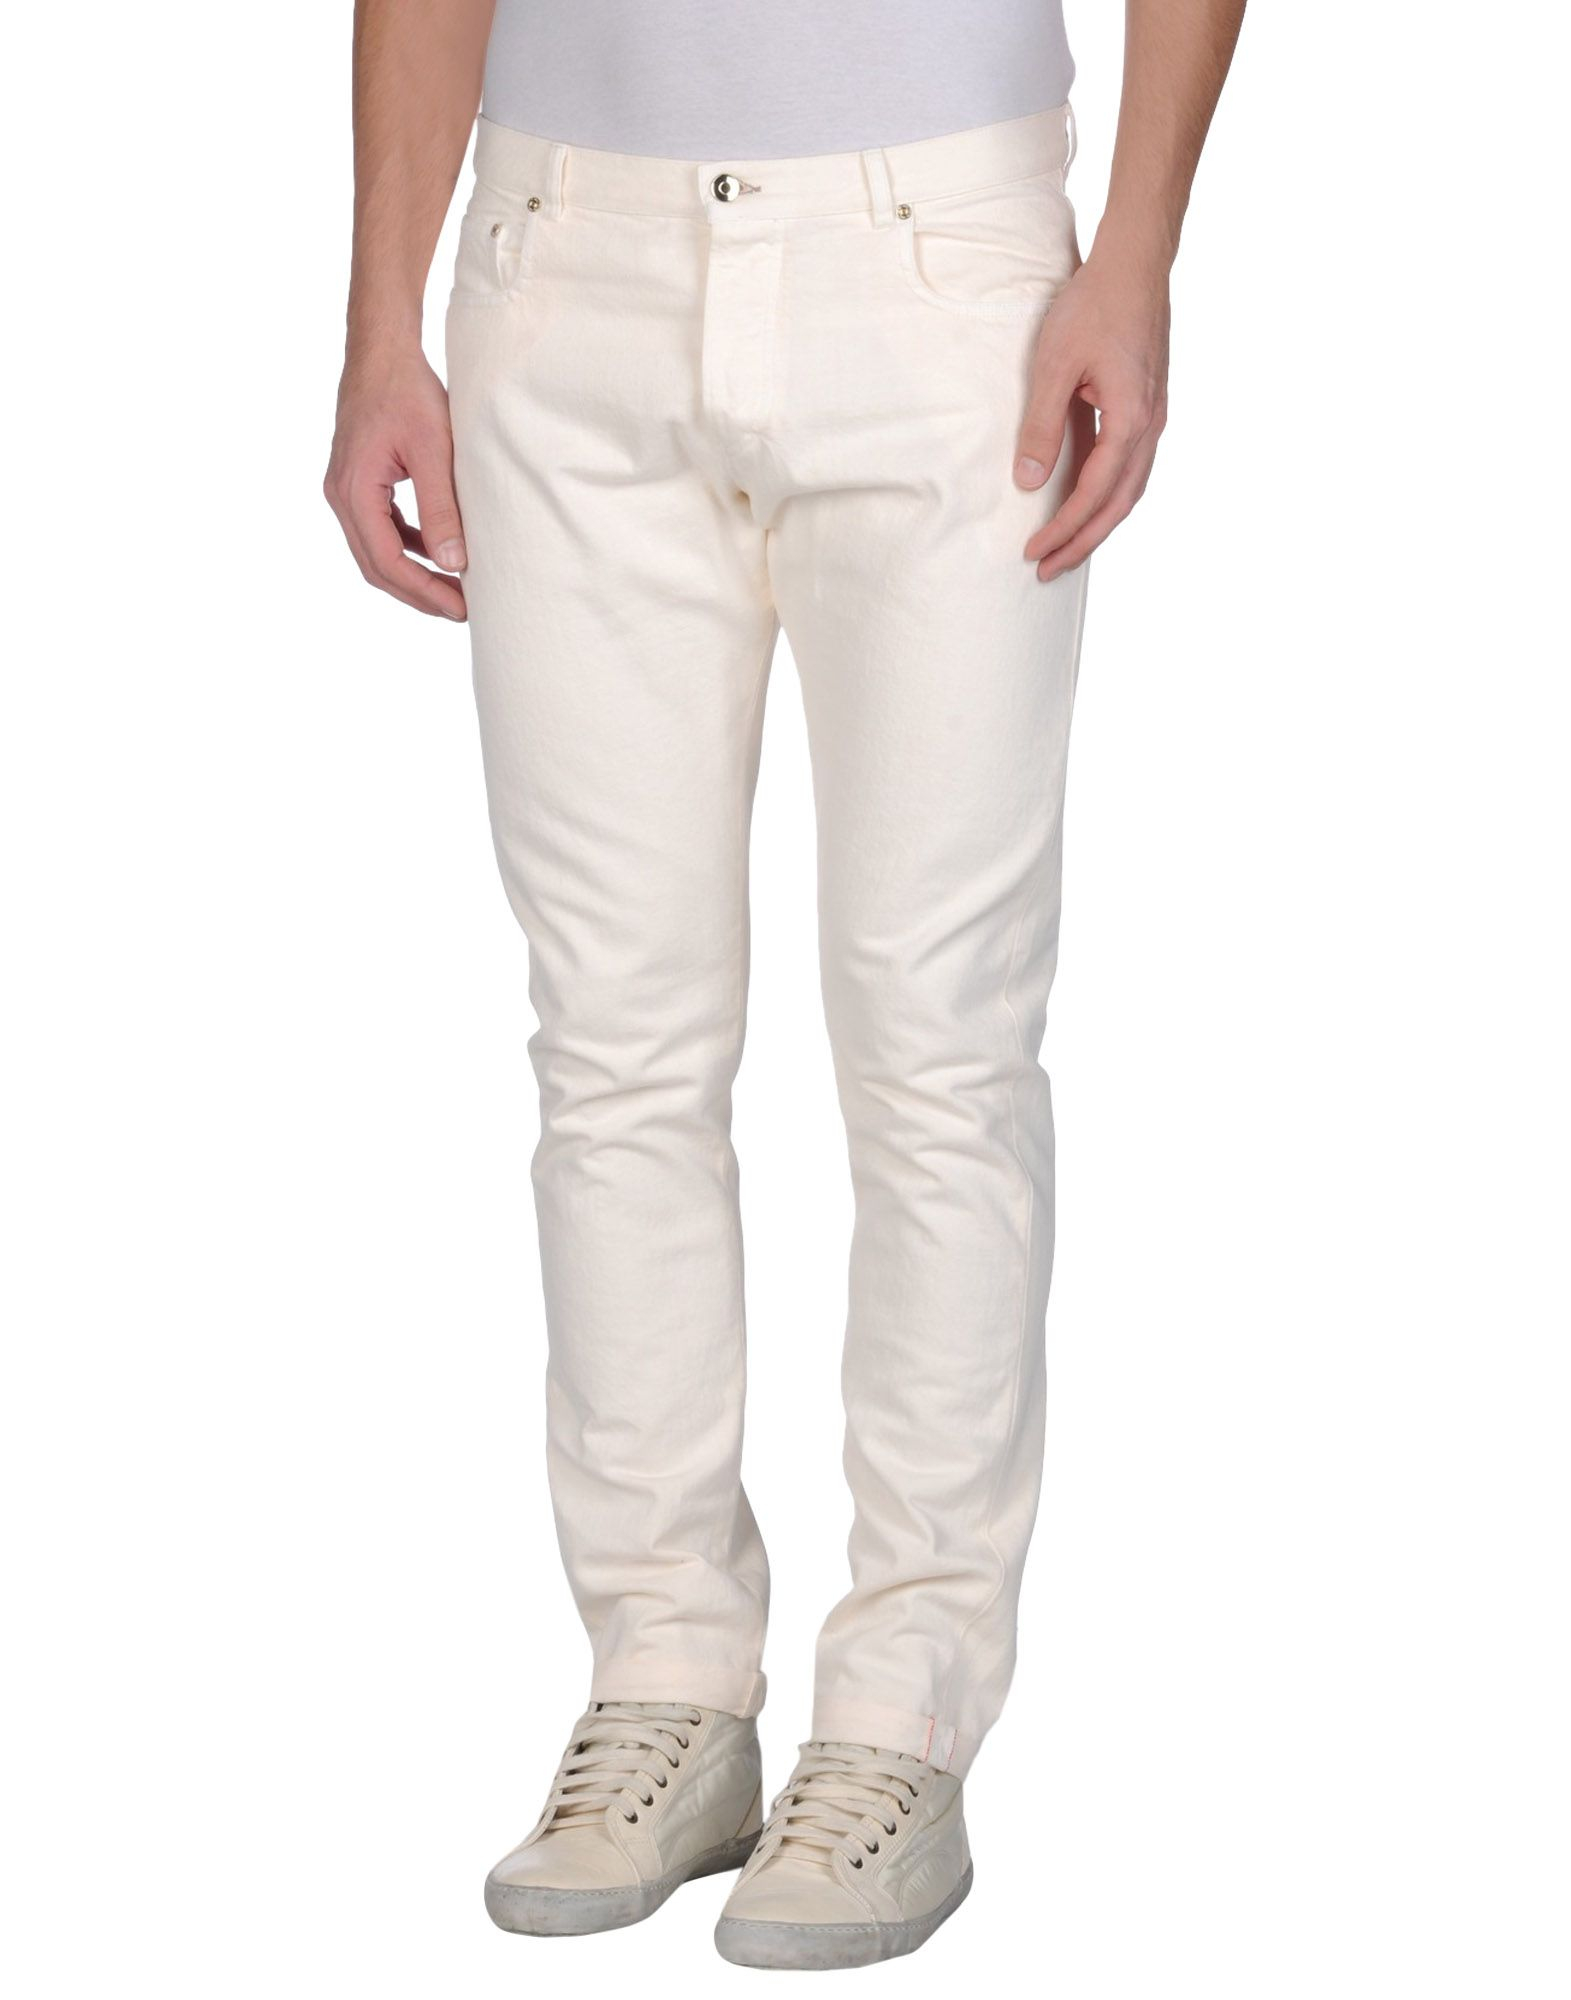 Colored Levi Jeans For Men